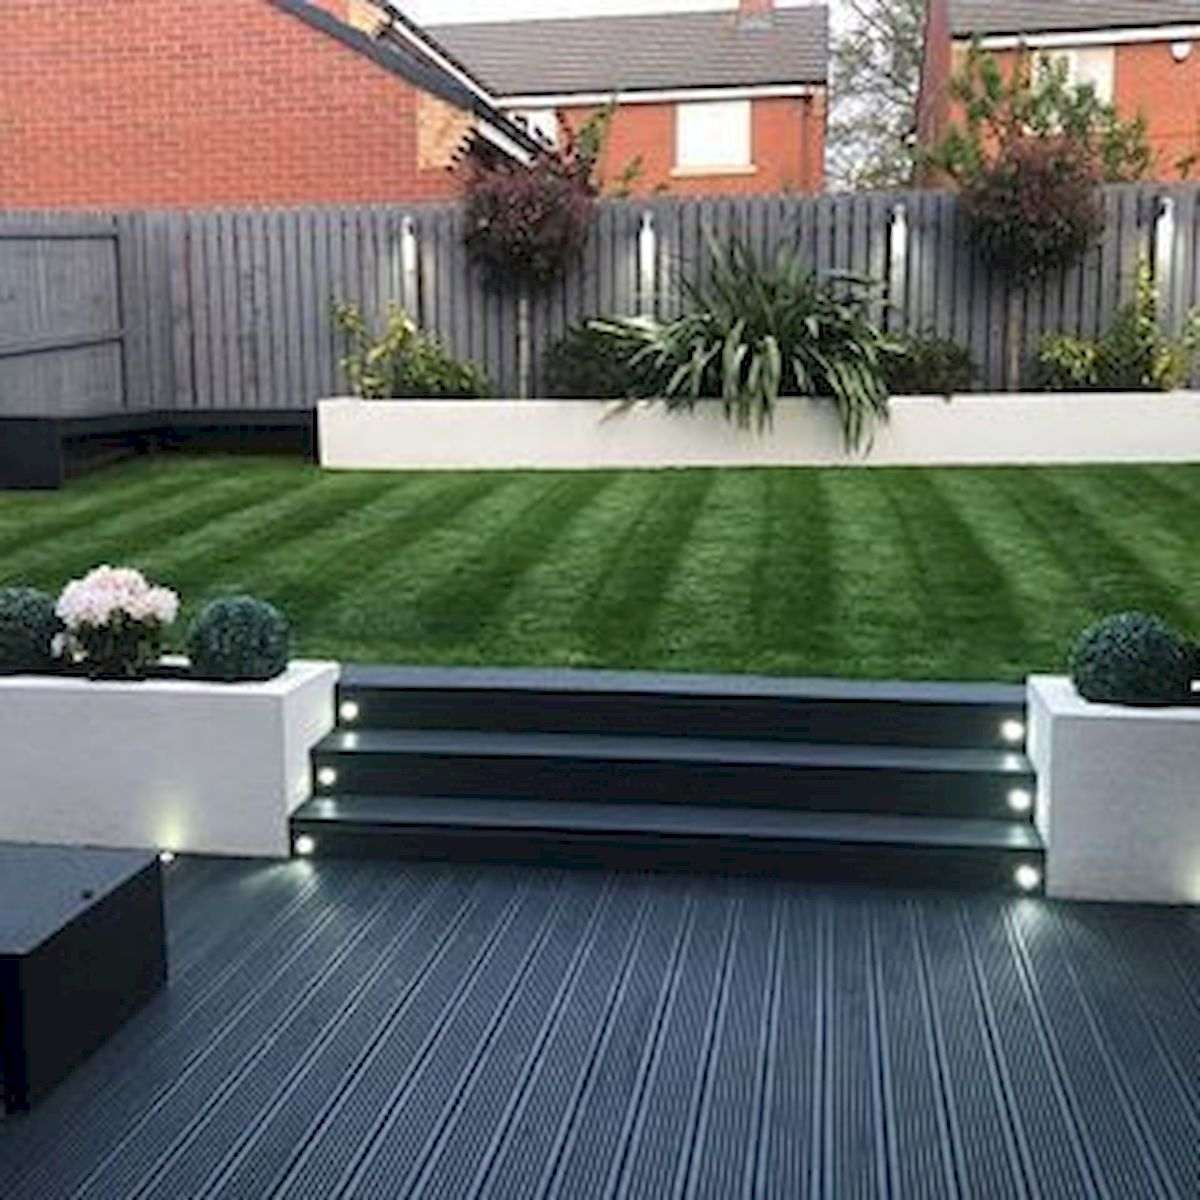 40 Fabulous Modern Garden Designs Ideas For Front Yard and ... on Patio And Grass Garden Ideas id=42376